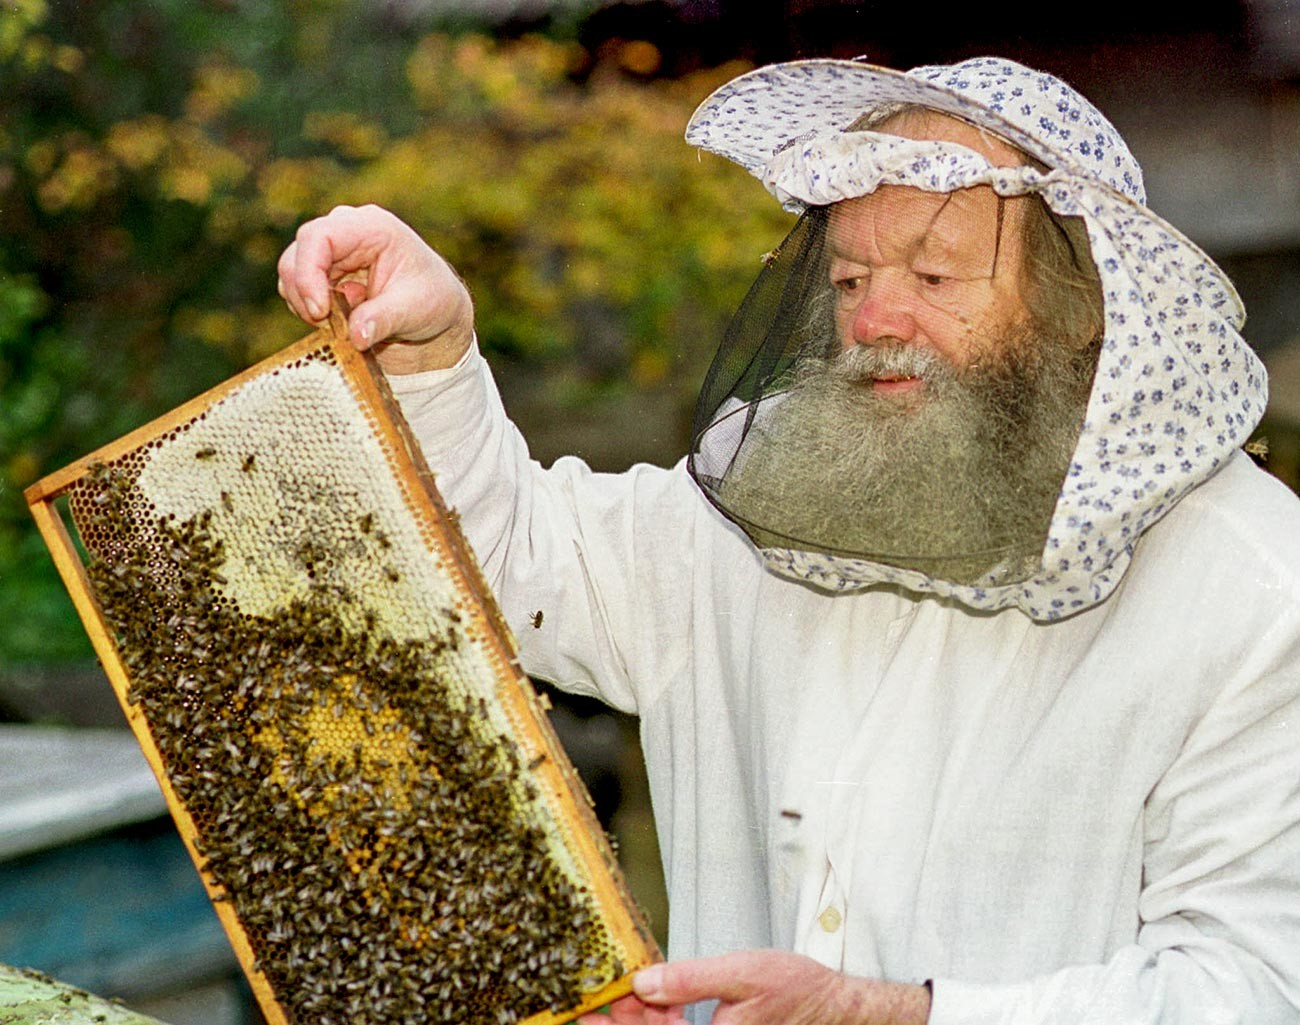 Producing honey is one of the oldest Russian crafts